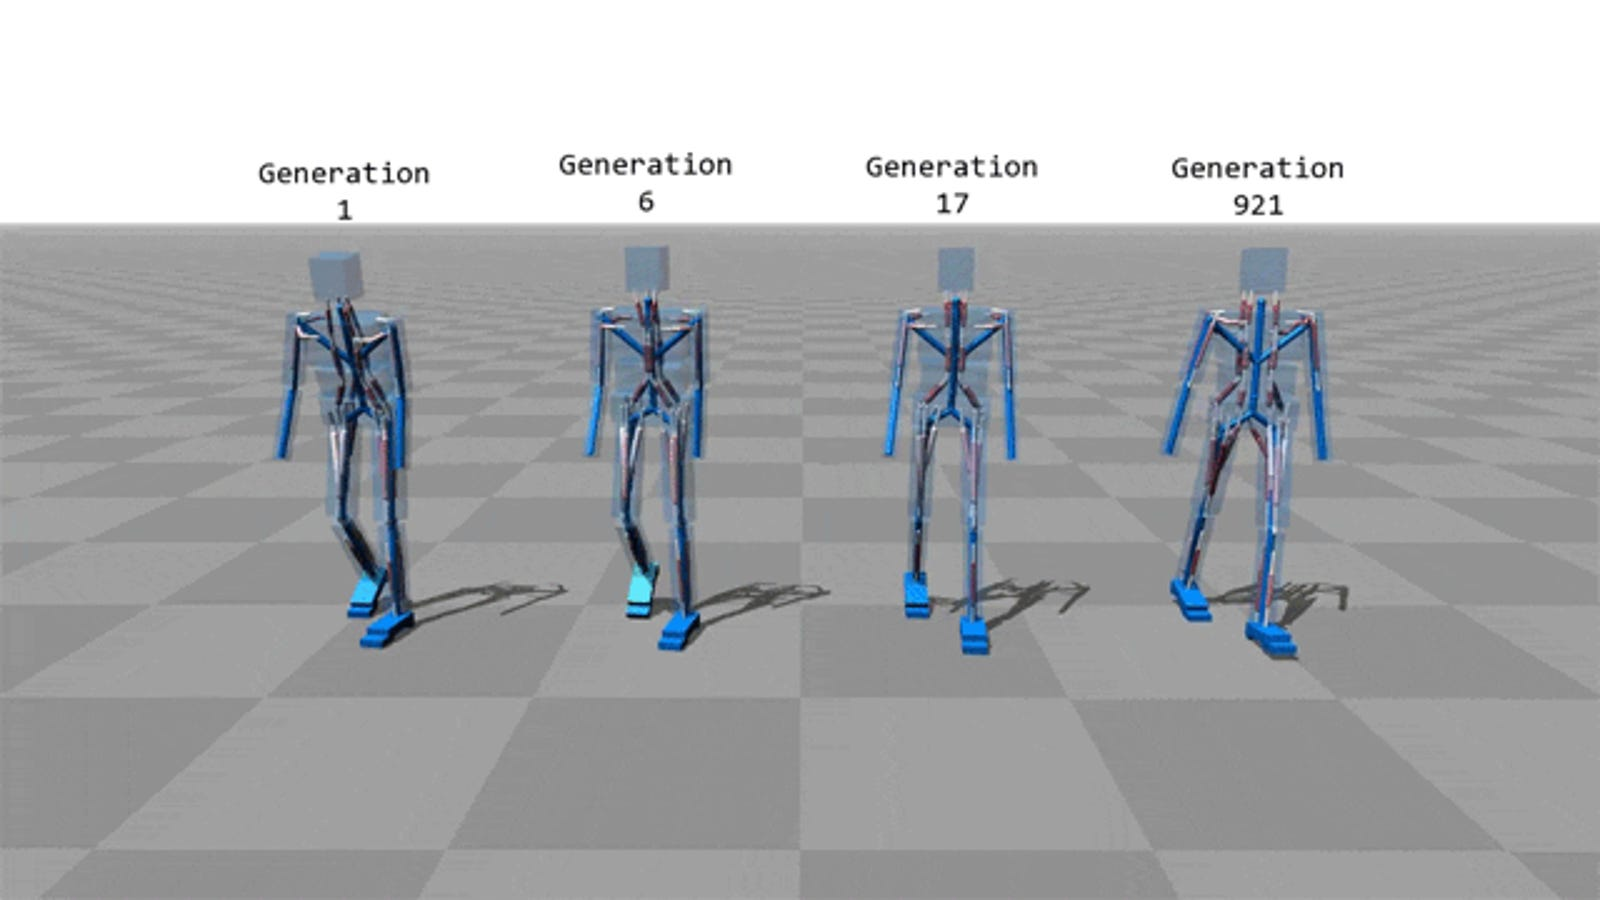 Even computer simulations have trouble with walking sometimes